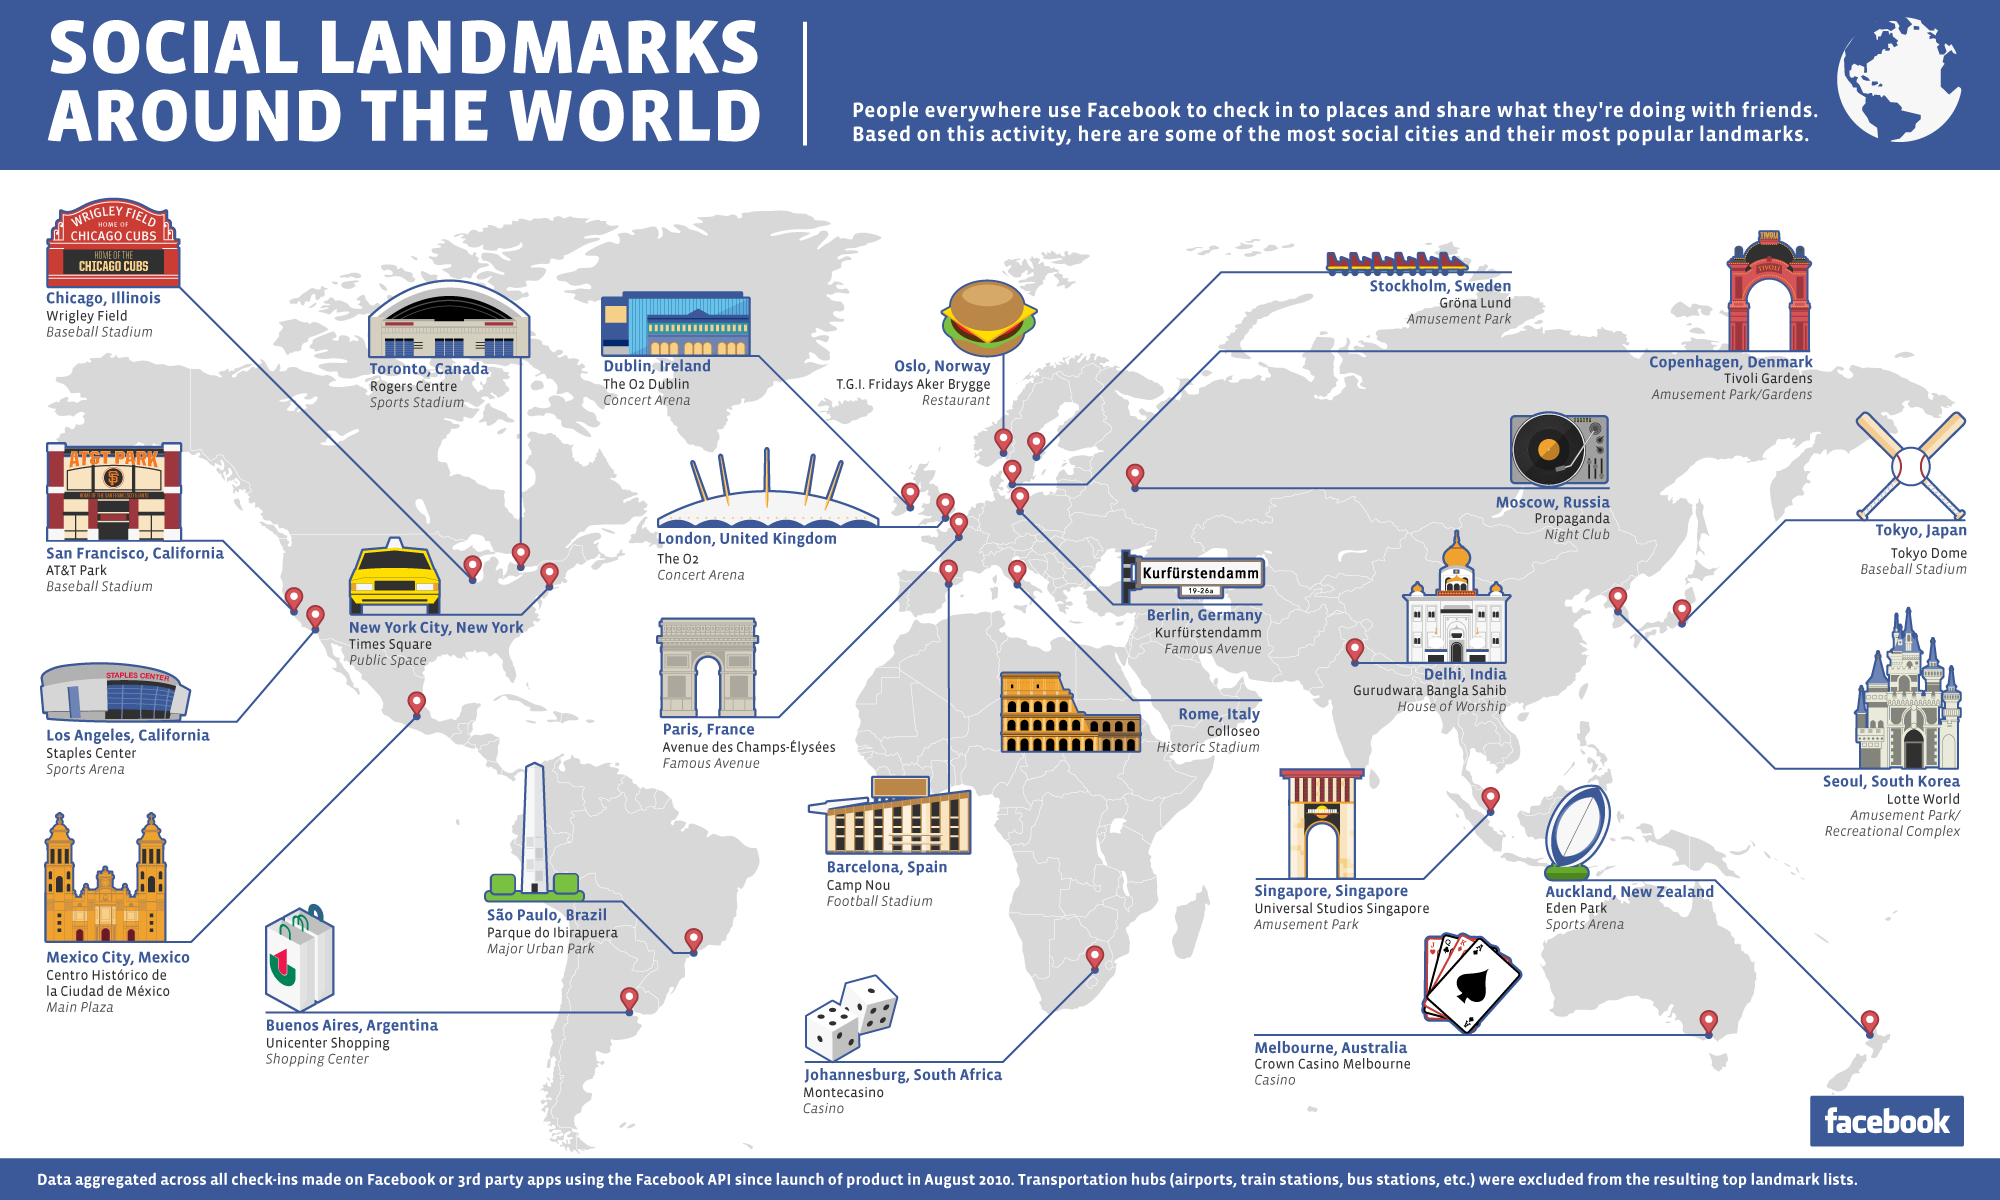 social landmarks around the world